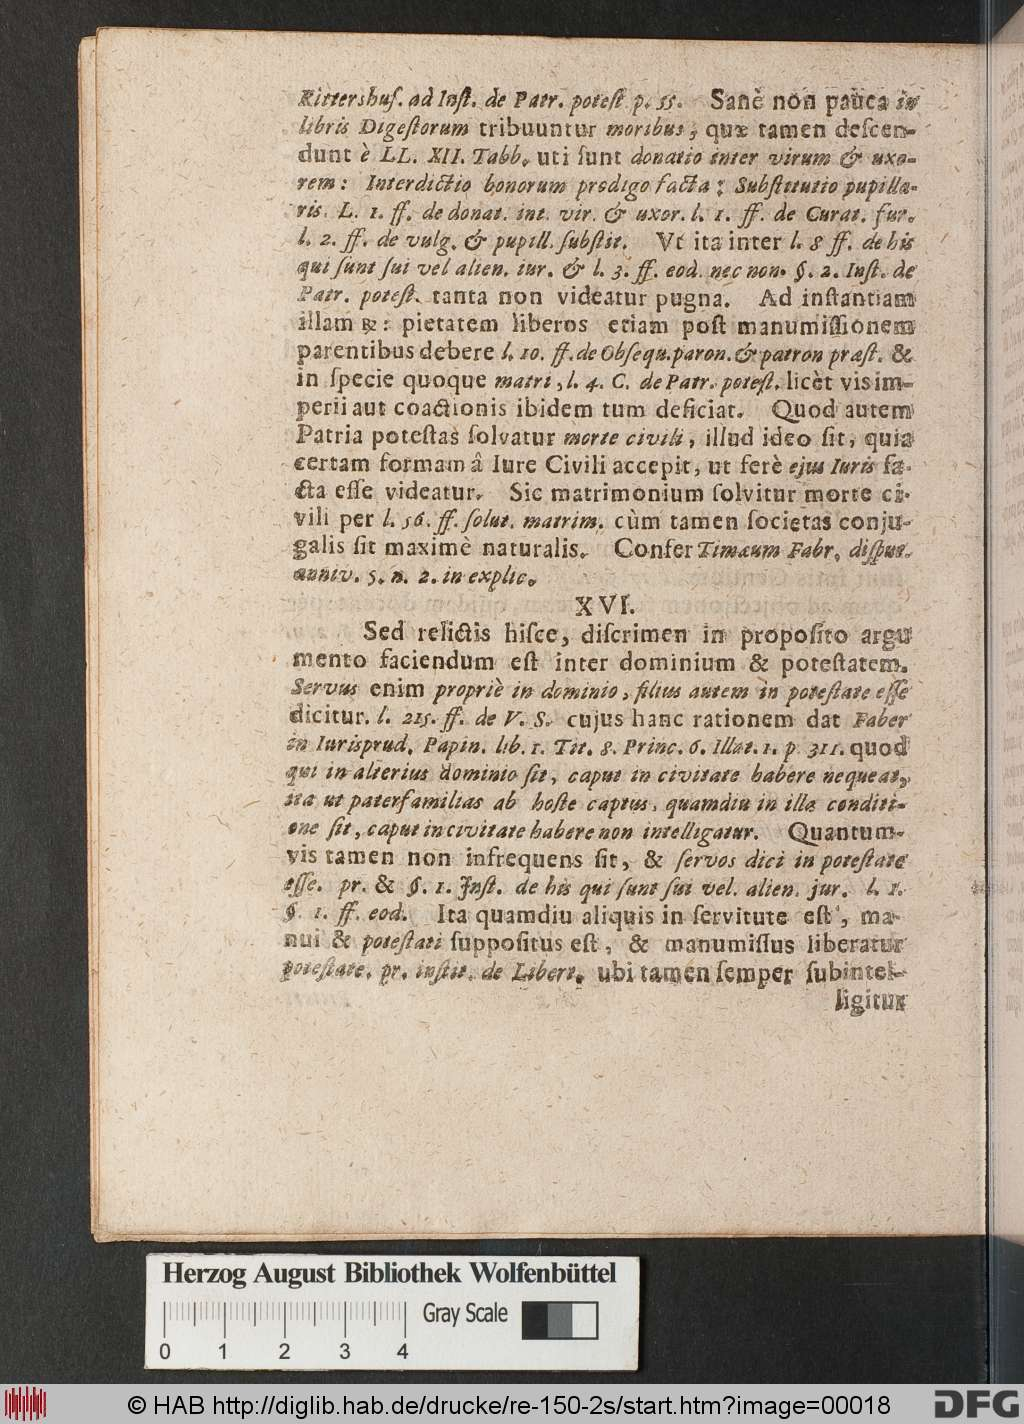 https://diglib.hab.de/drucke/re-150-2s/00018.jpg